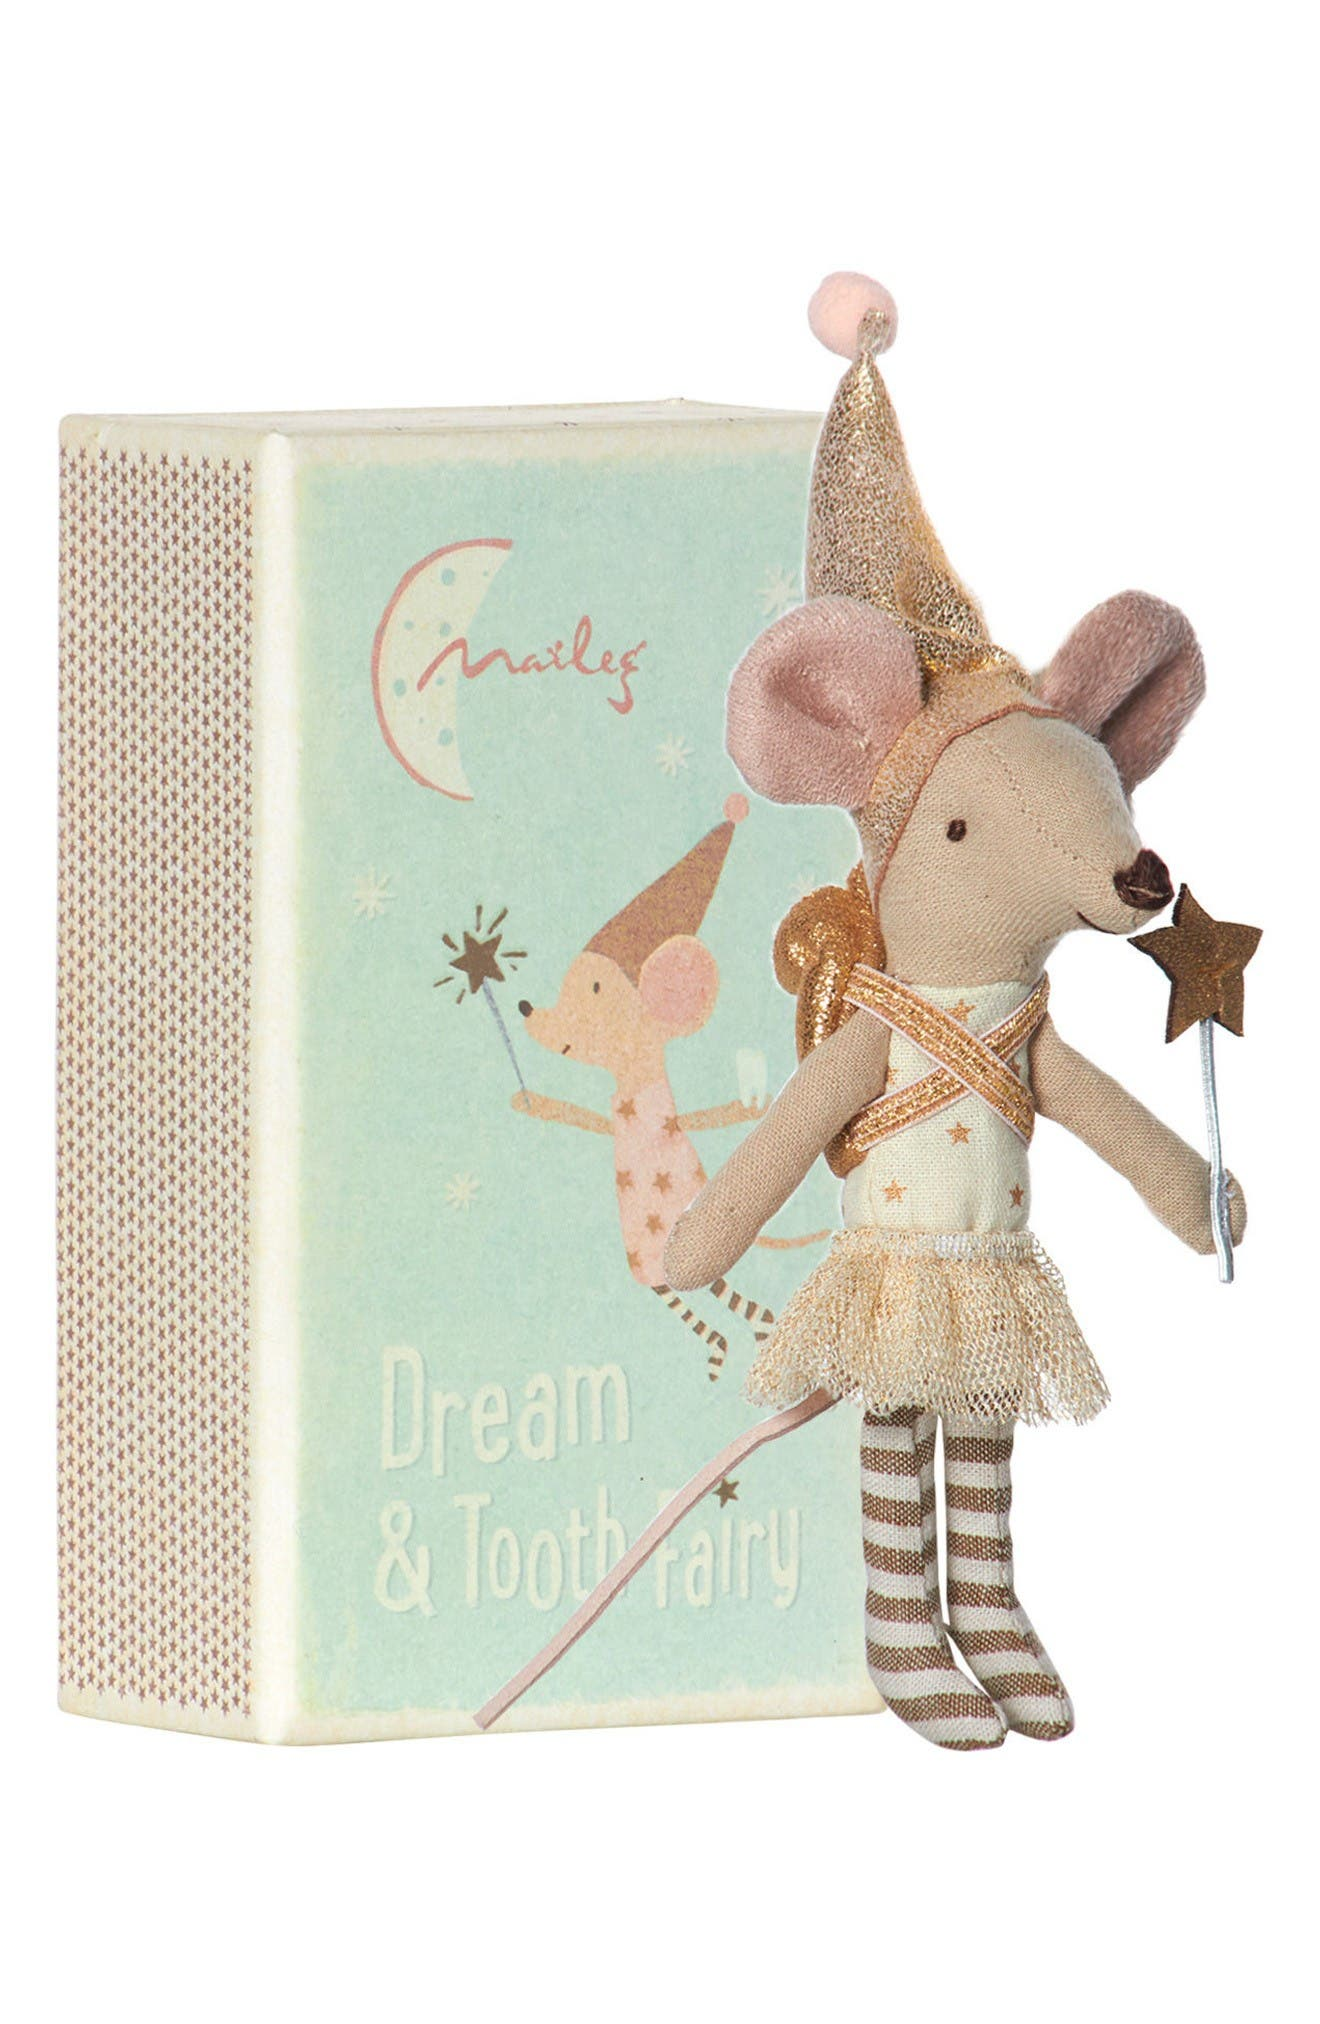 Maileg Girl Tooth Fairy Mouse Stuffed Animal in Box